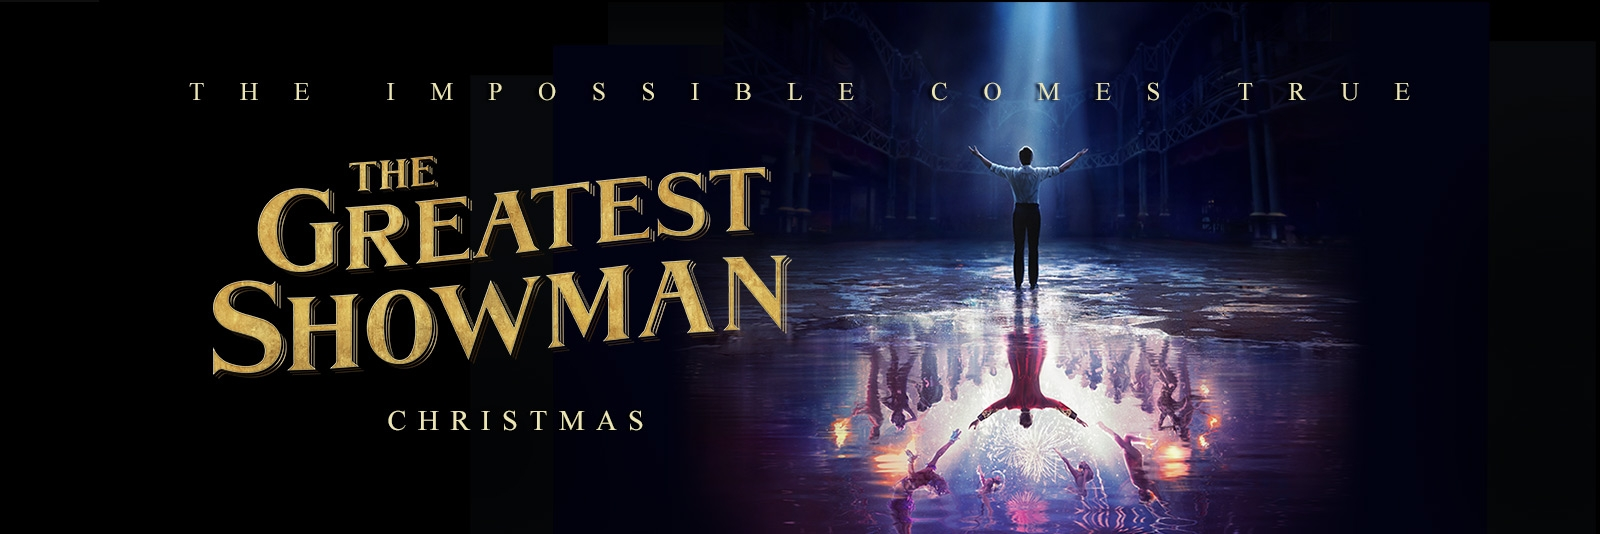 The Greatest Showman Desktop Wallpaper Posted By Samantha Tremblay